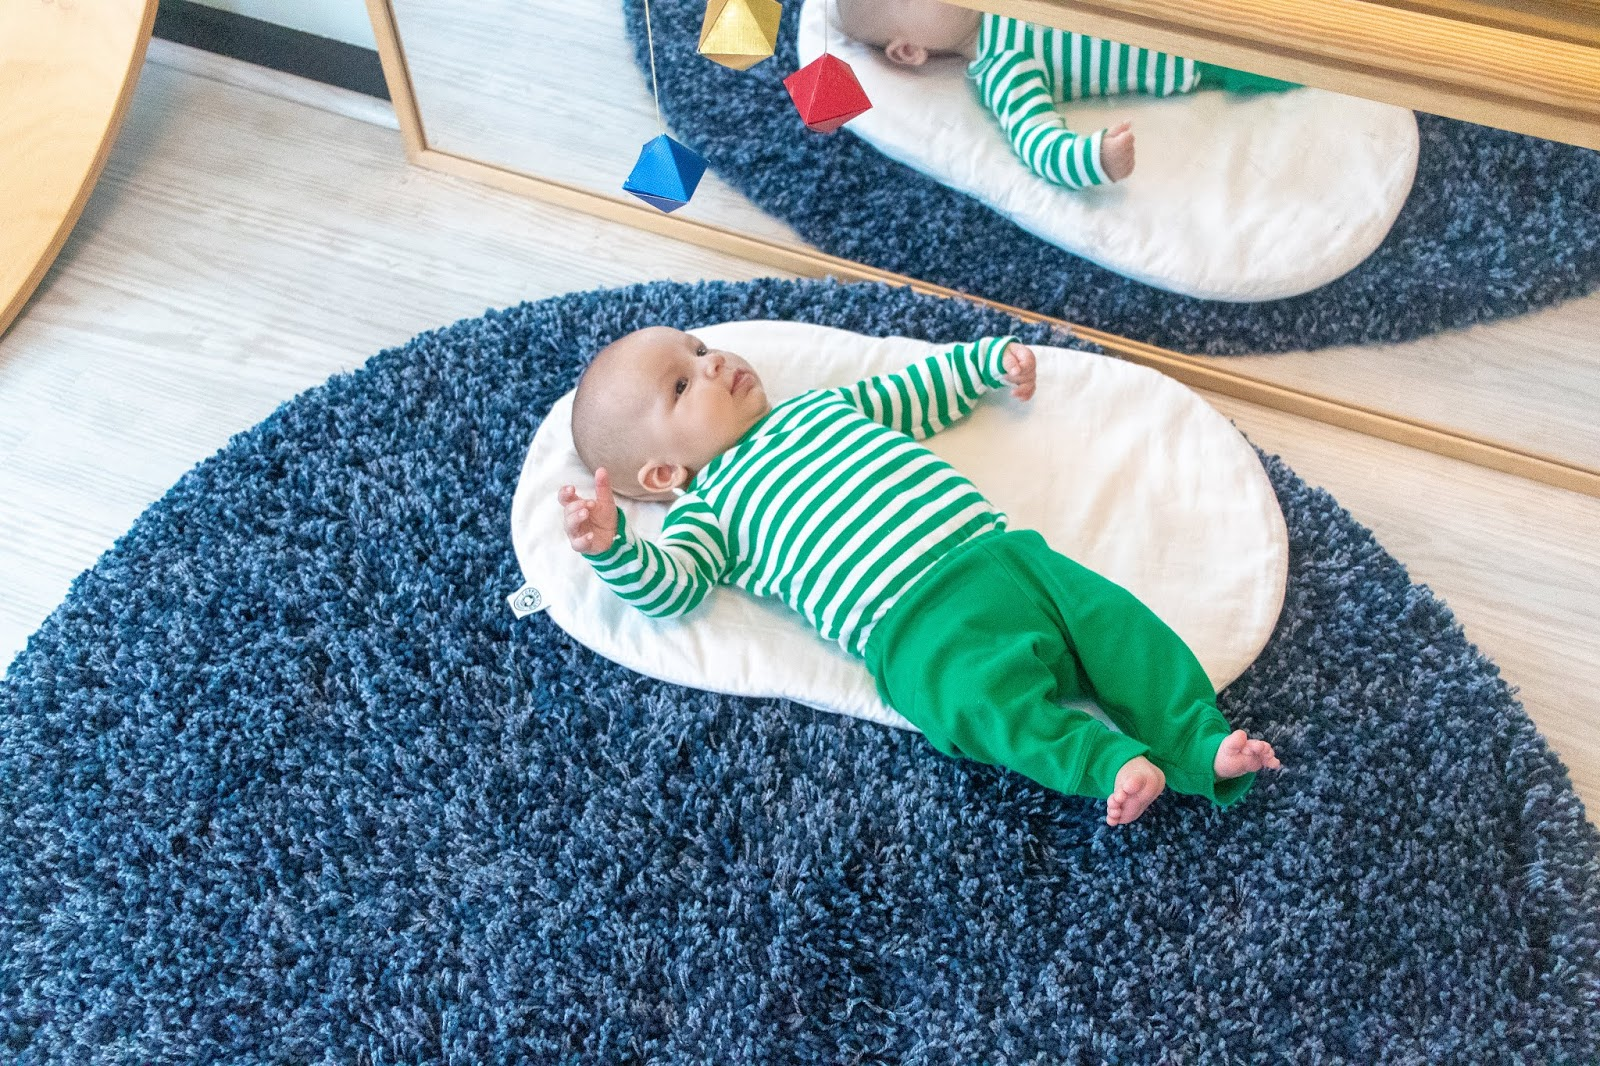 Notes on observing a newborn - practical tips for observing a baby from a Montessori perspective